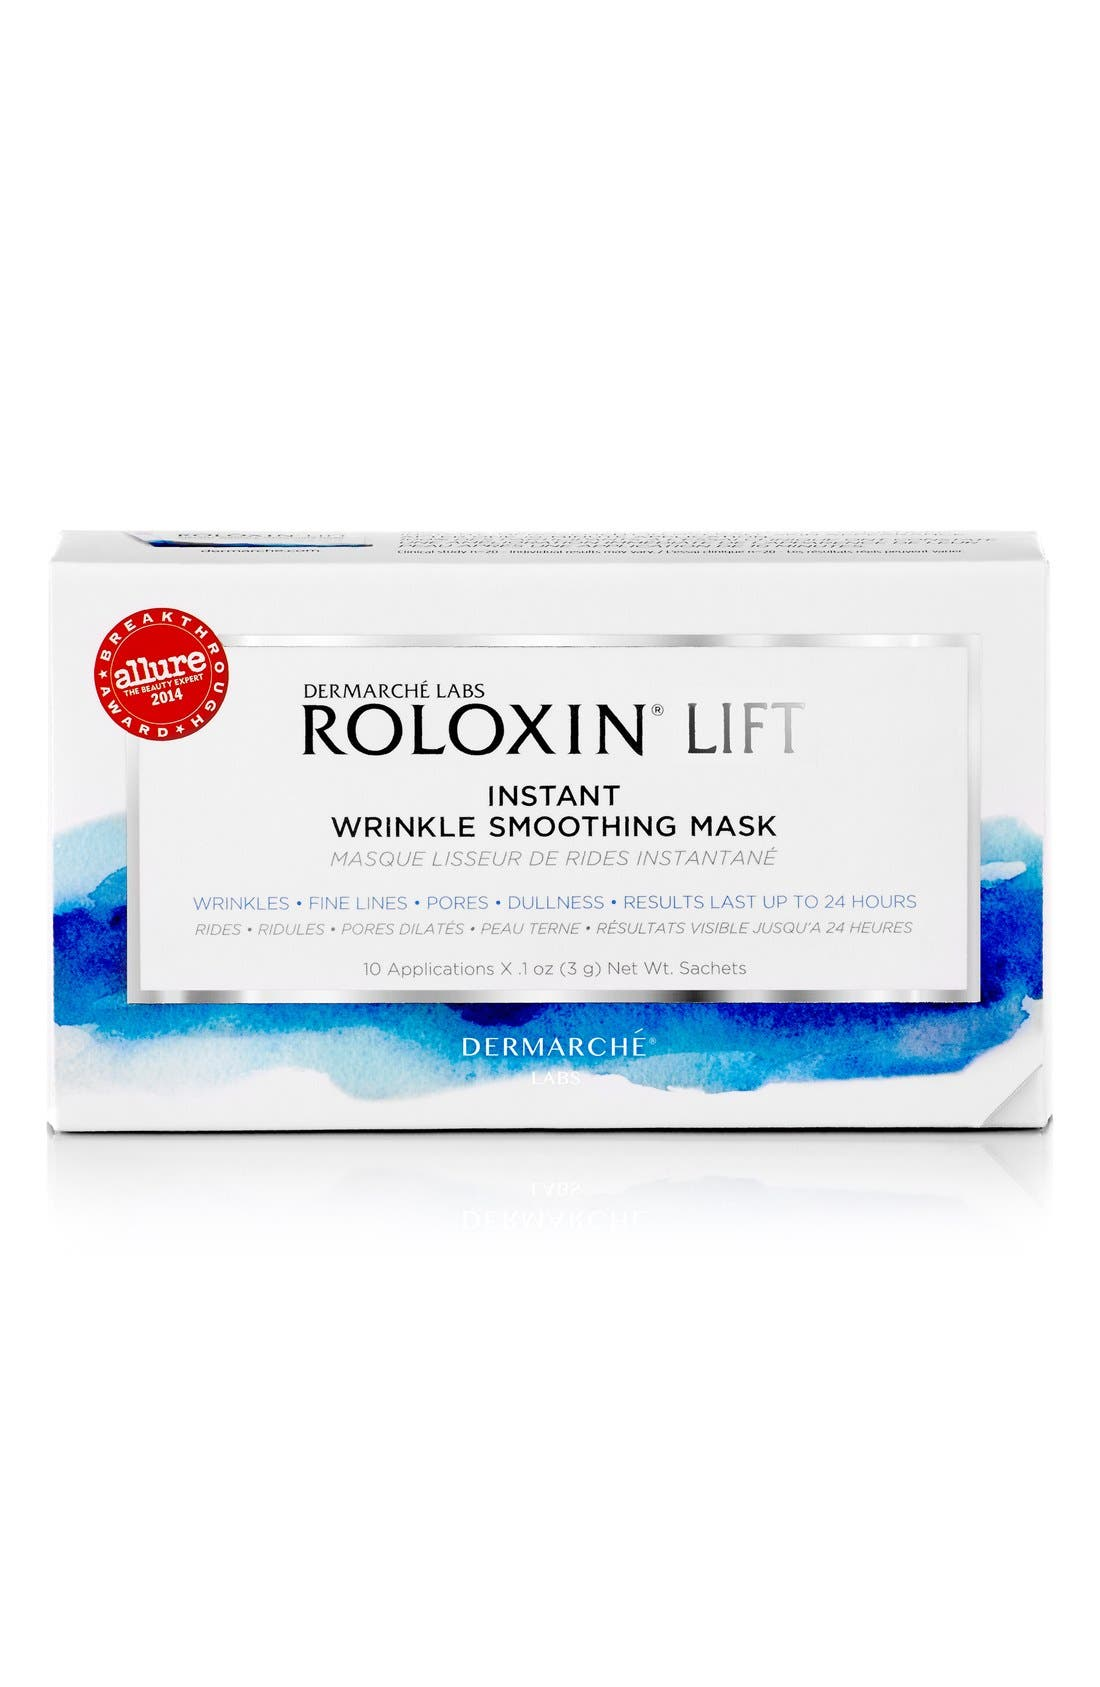 Dermarché Labs 'Roloxin<sup>®</sup> Lift' Instant Wrinkle Smoothing Mask,                             Main thumbnail 1, color,                             000